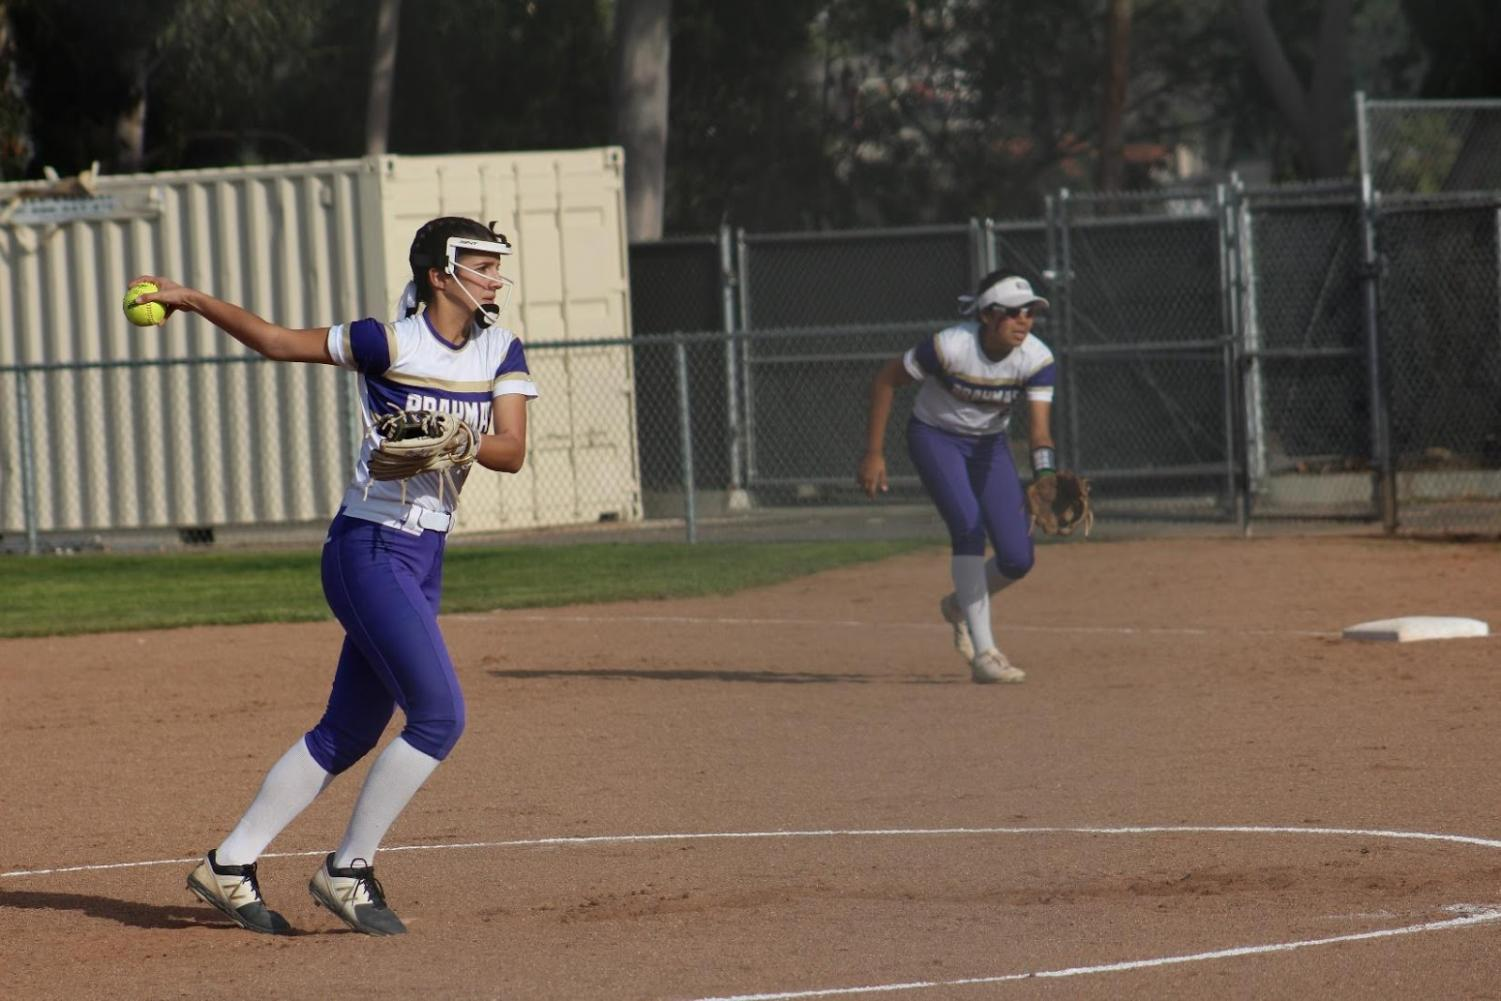 Sophomores Miranda Montes pitches while Carina Sanchez scans the outfield.